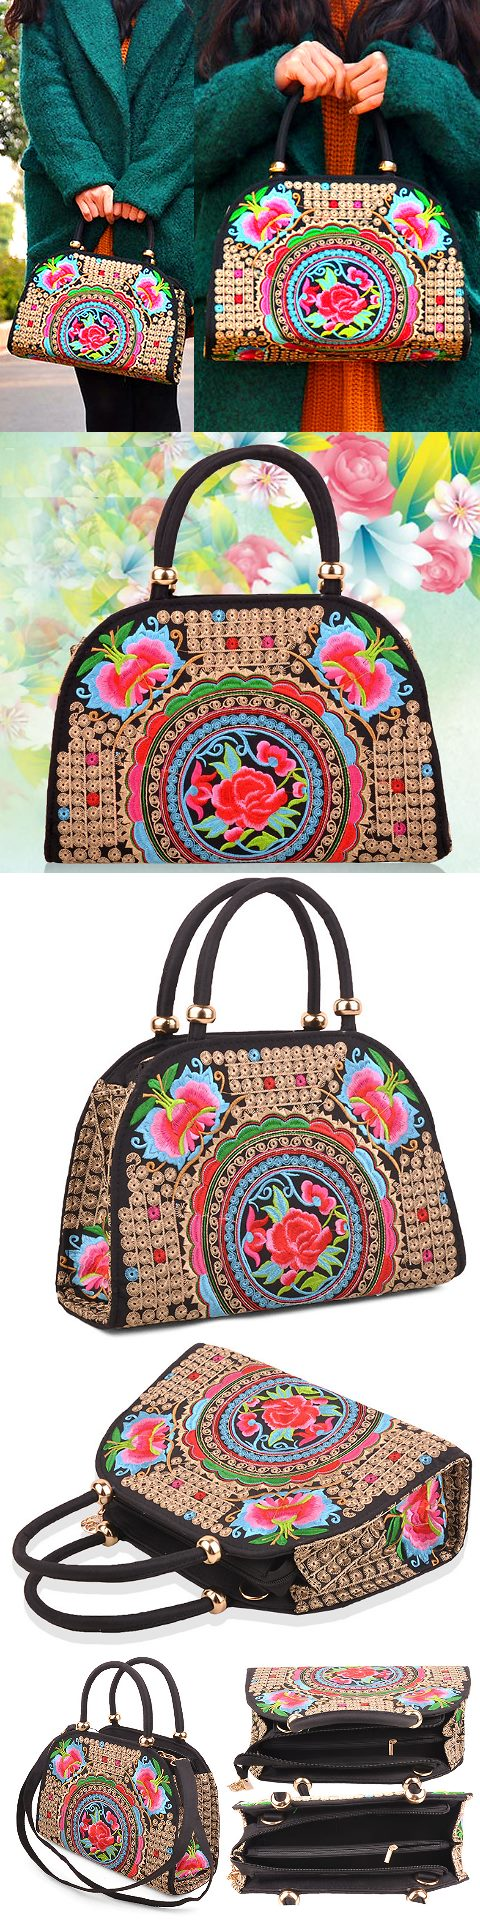 Ethnic Embroidery Handbag